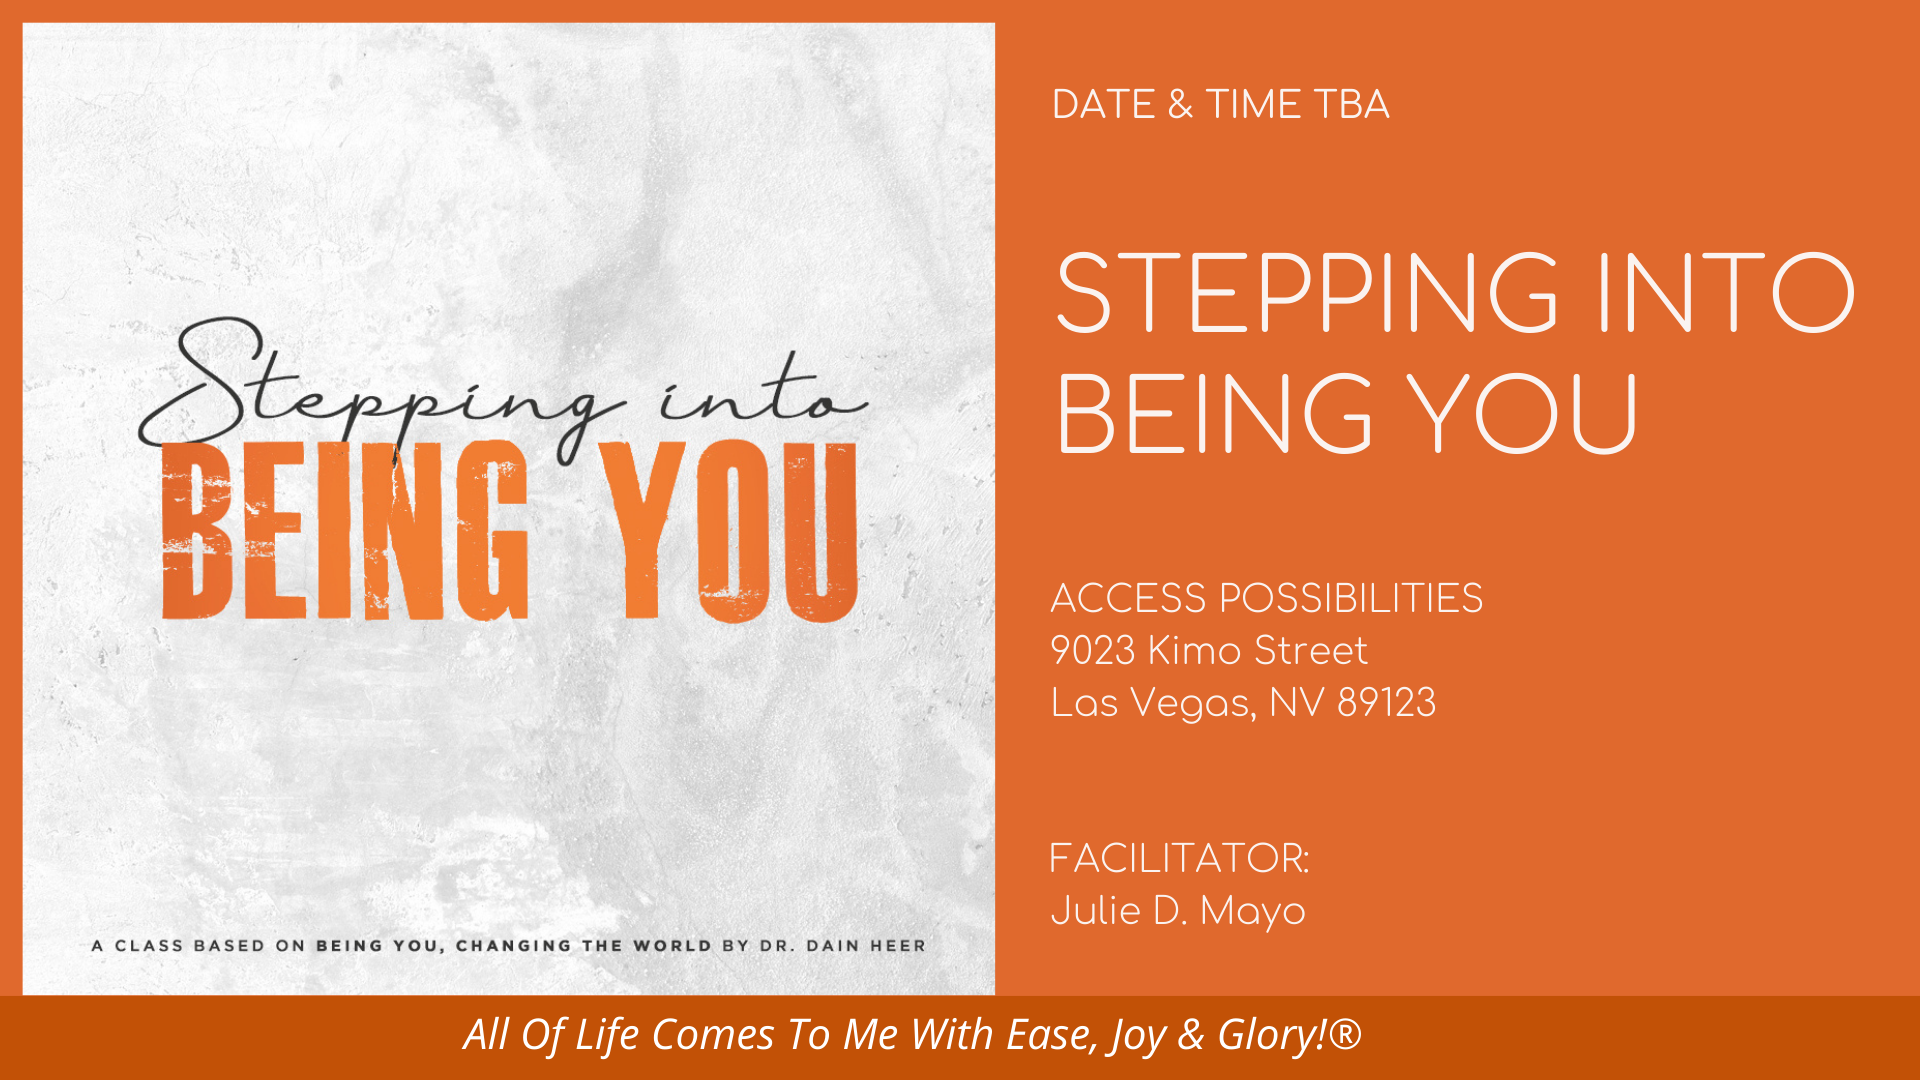 Stepping Into Being You Live Class Details   TBA   Las Vegas, NV